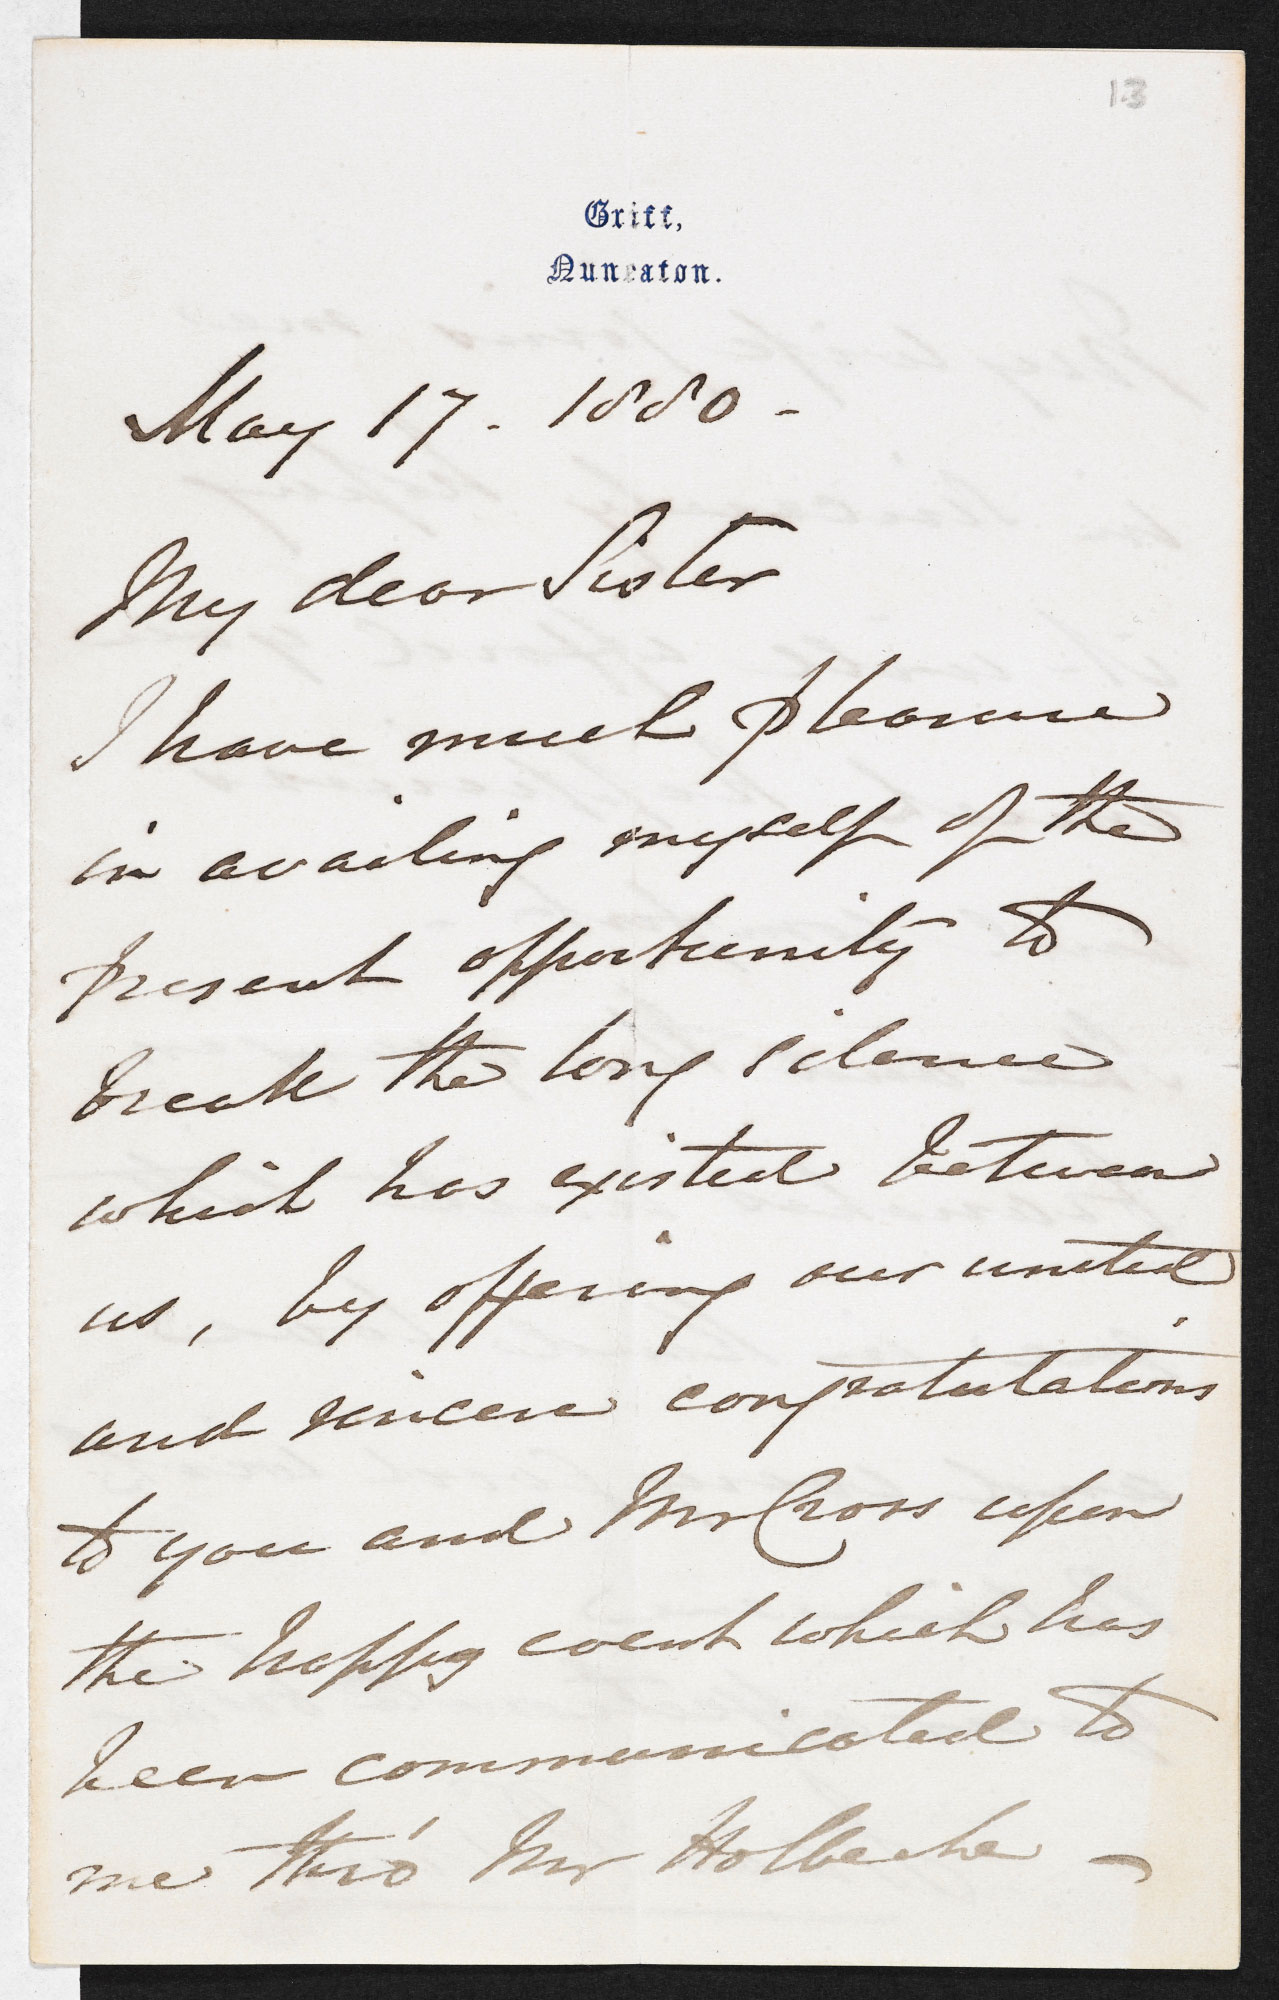 Letter from Isaac Evans to George Eliot, congratulating her on her marriage